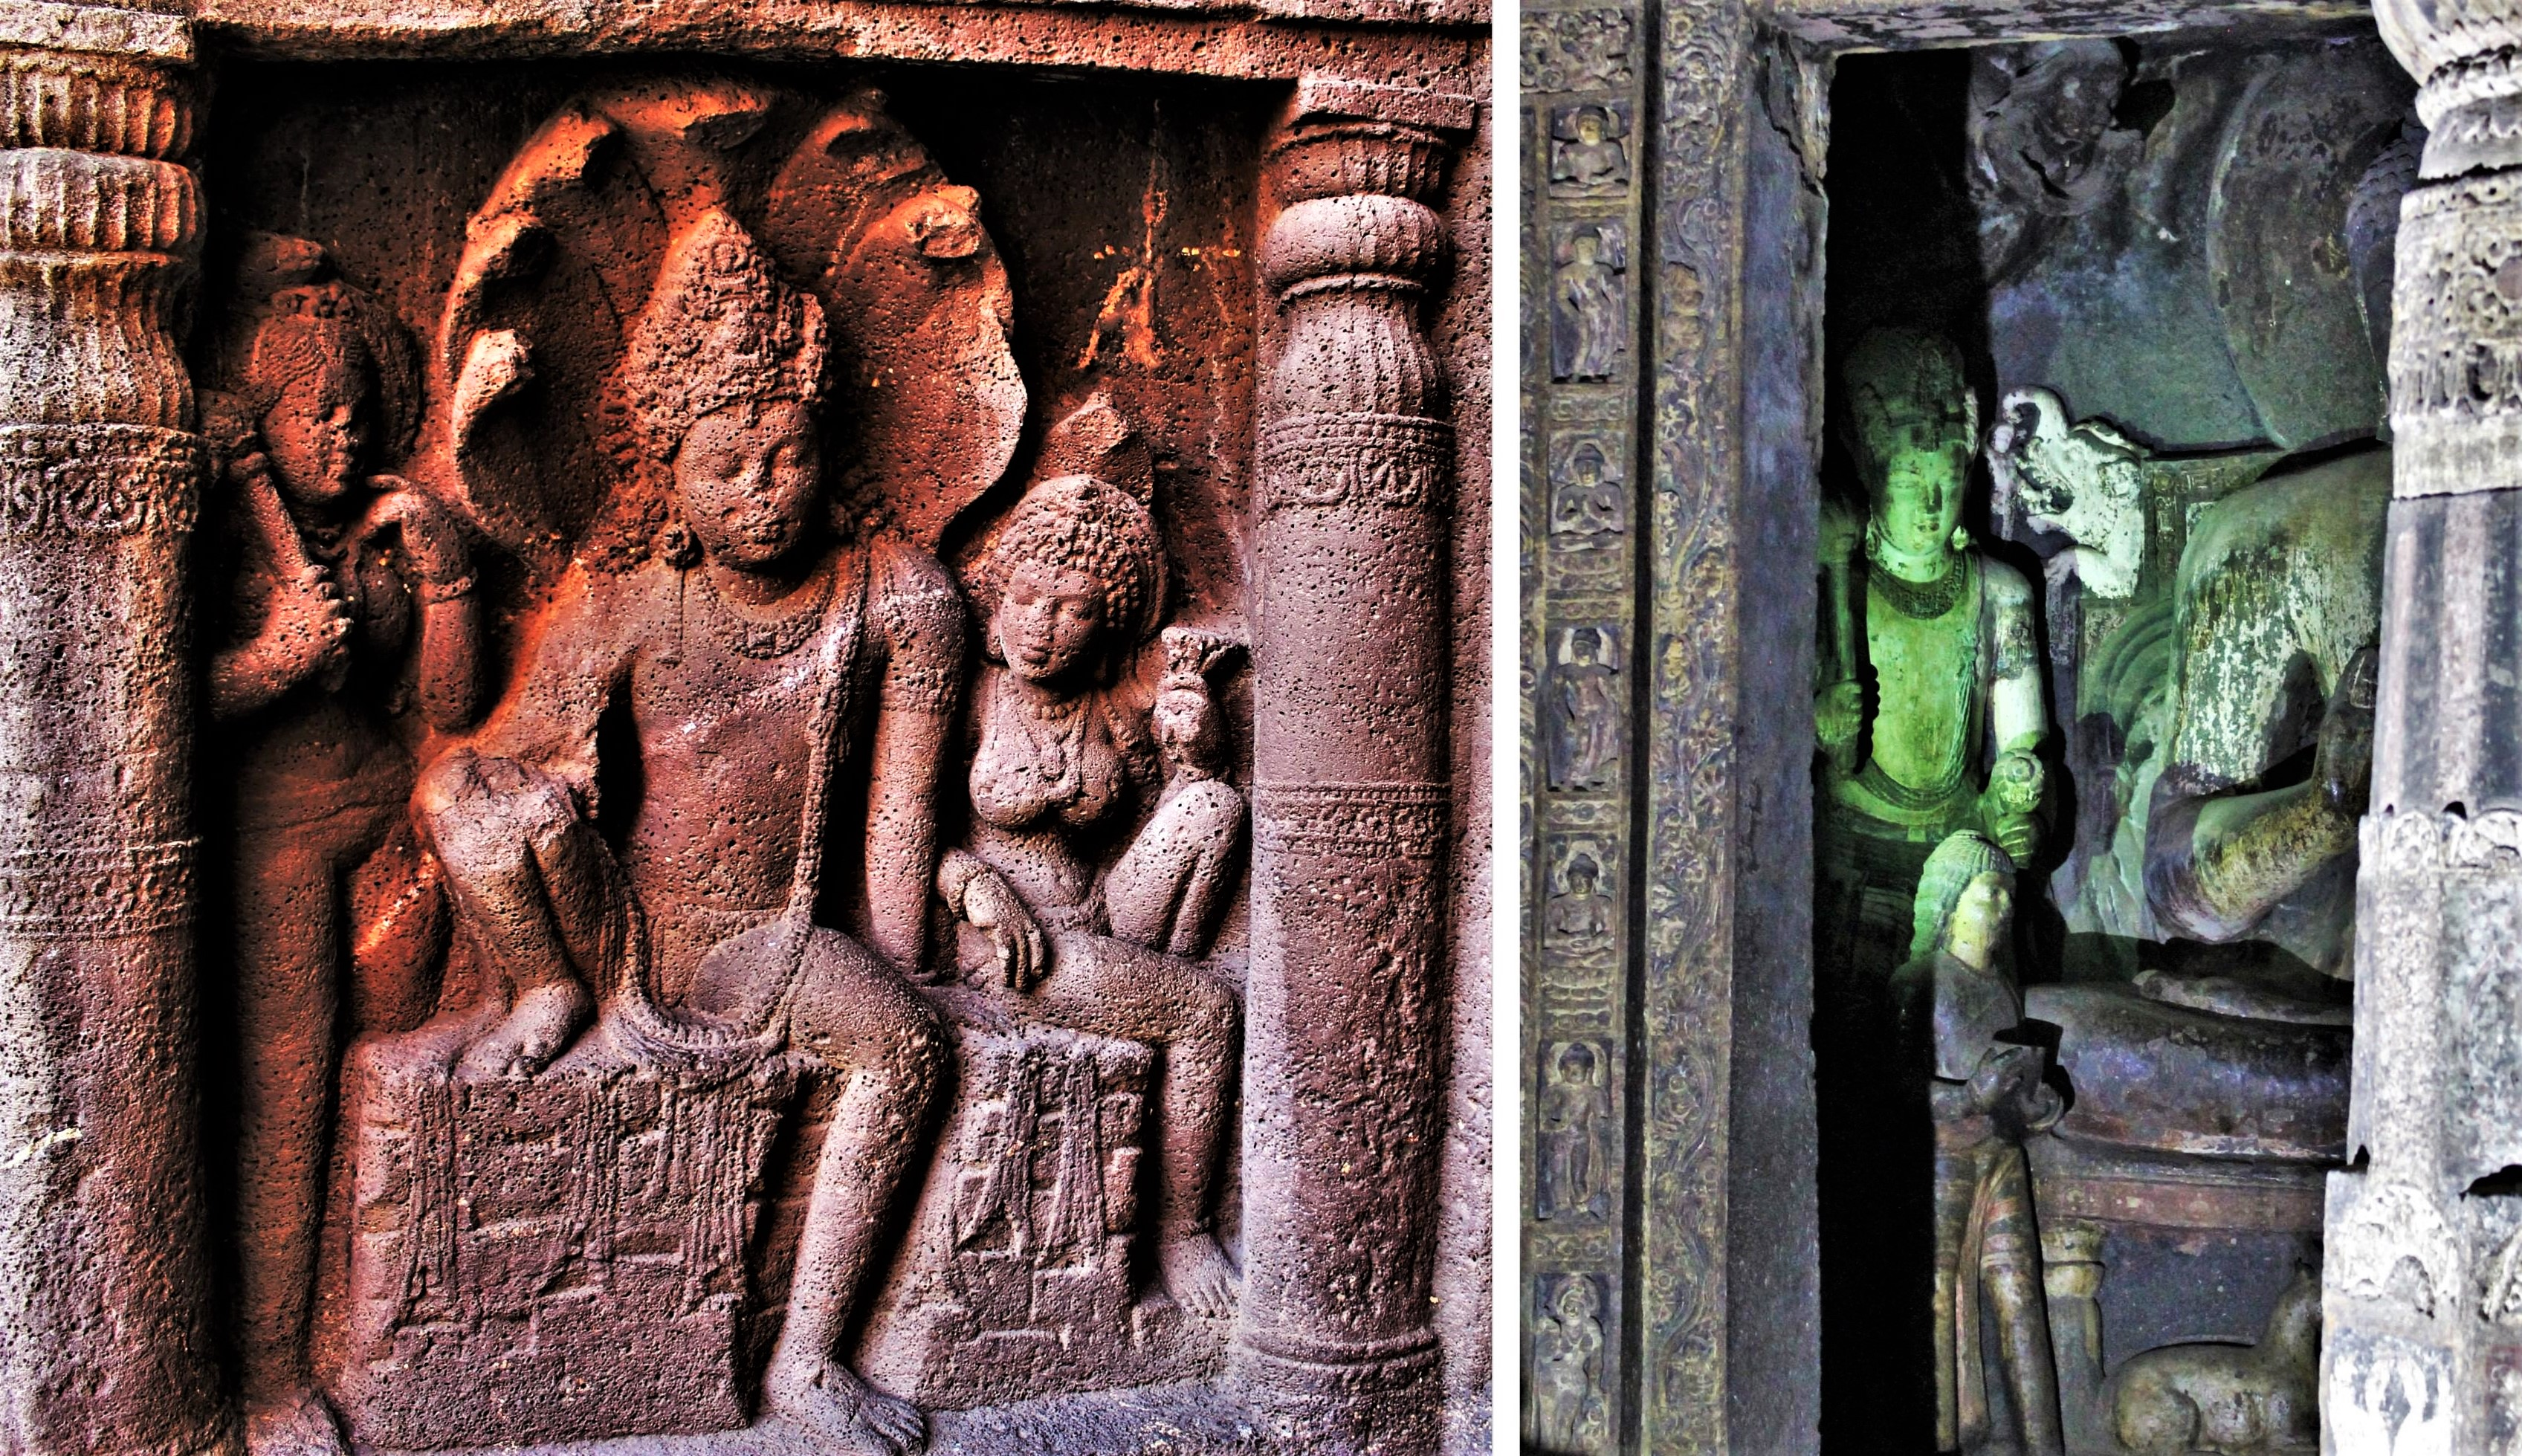 Left: Sculpture of Nagaraja and his wife; Right: Sculpture of Buddha offering begging bowl to his son Rahula (Cave 19)